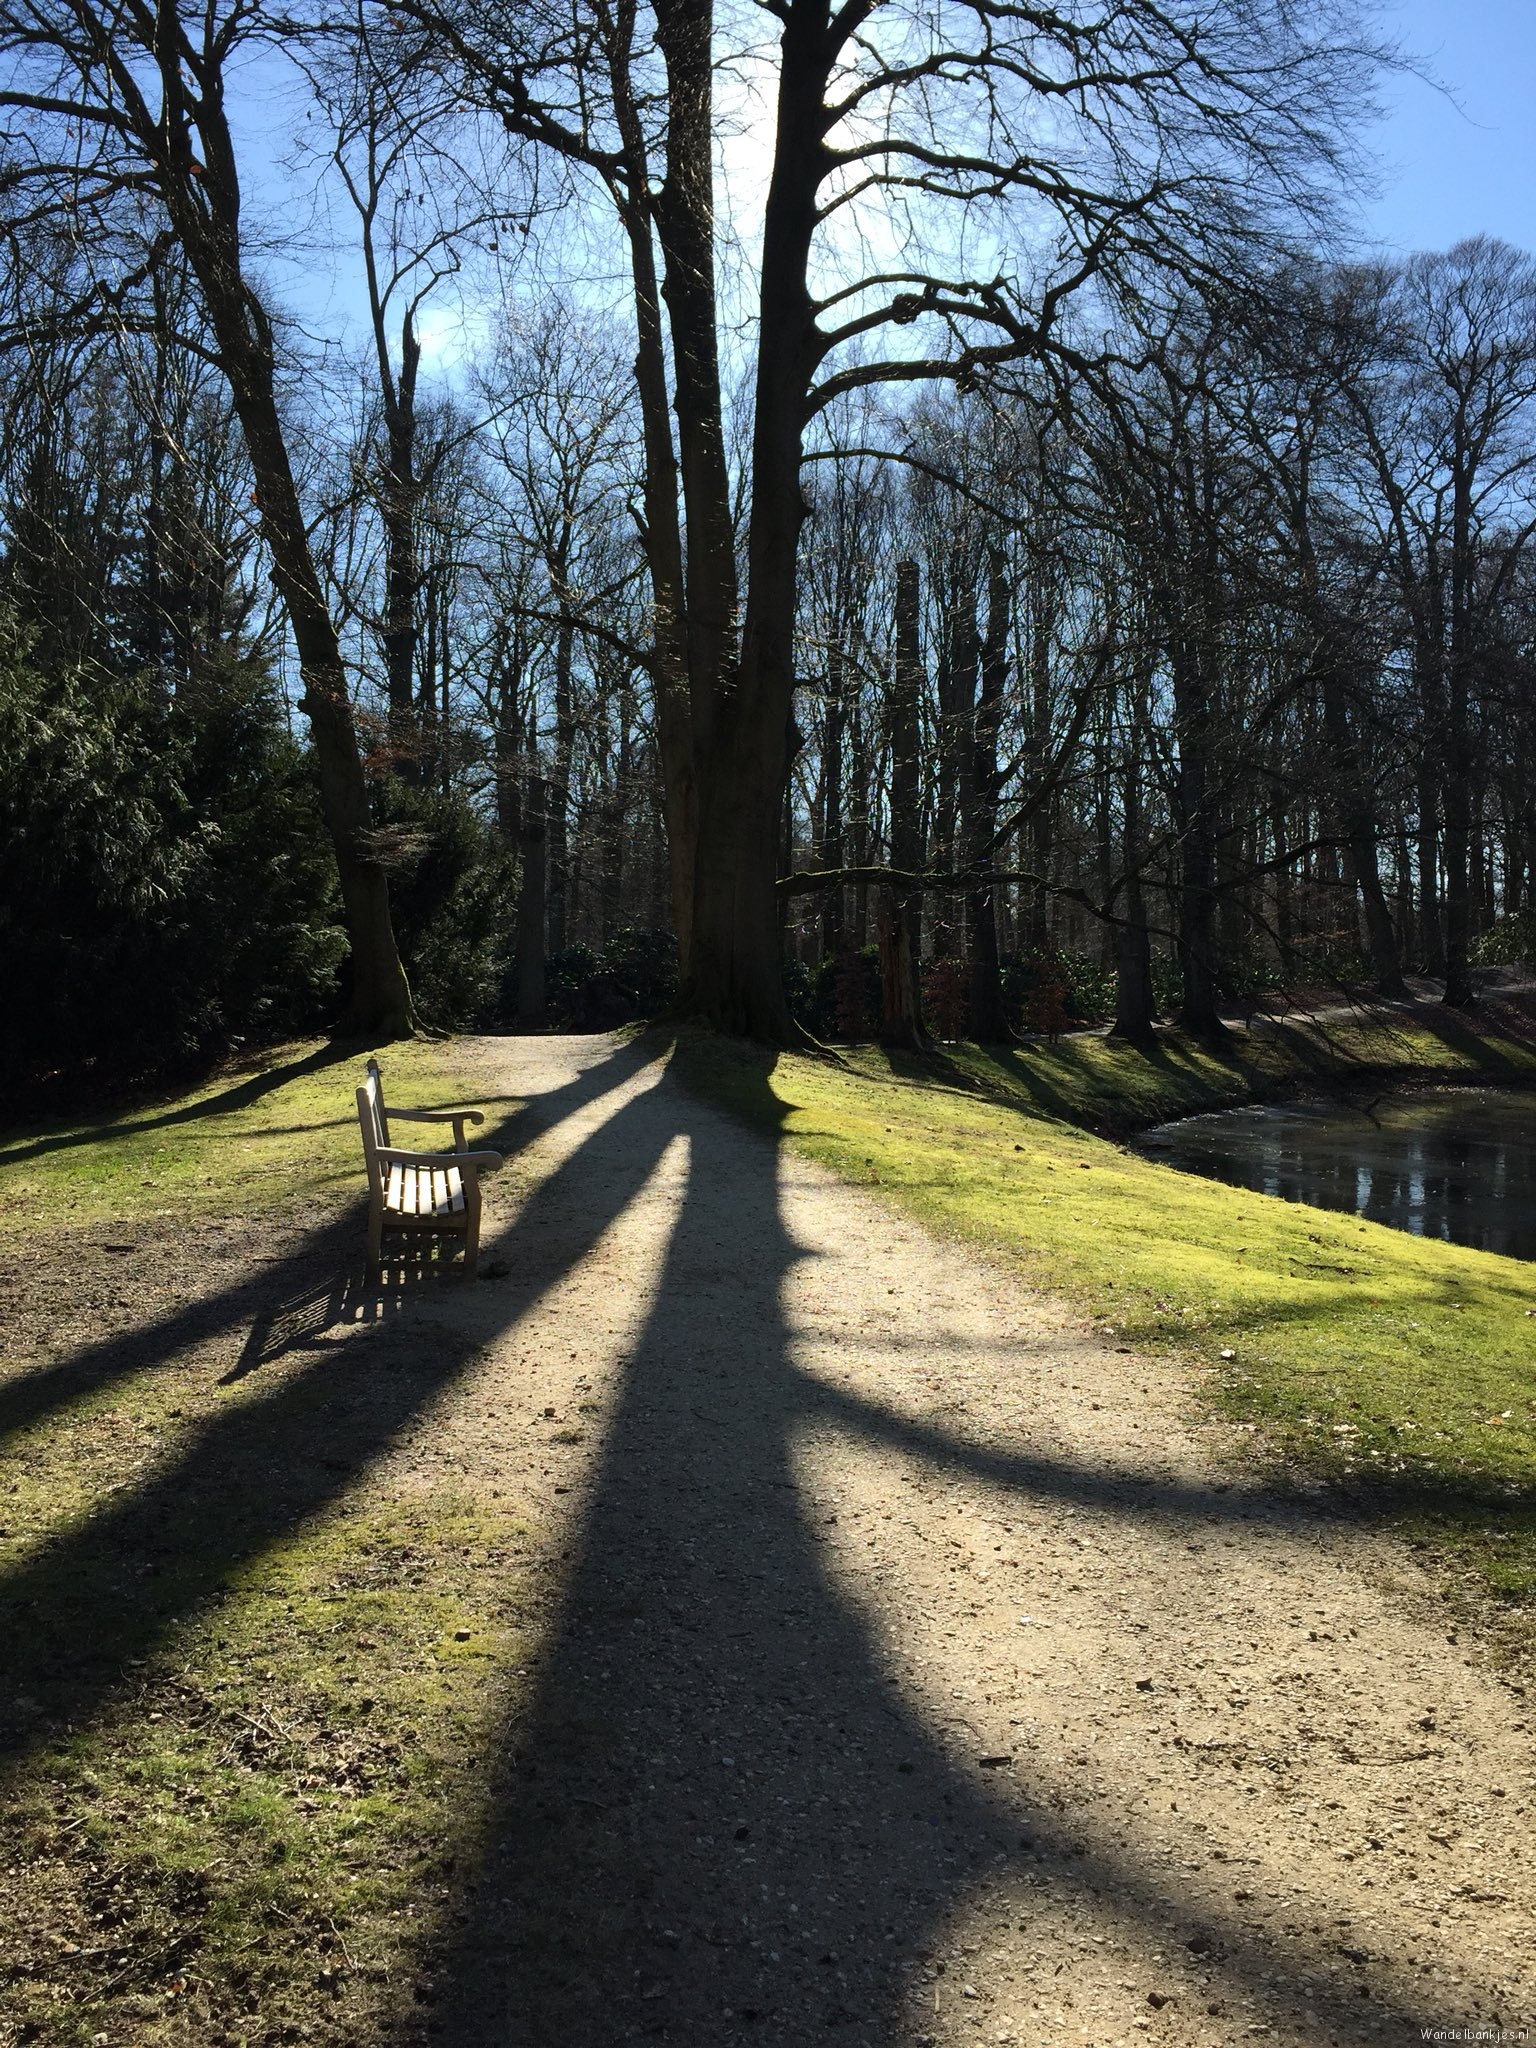 rt-westalet-green-changing-baarn2-walking-bar-walking-walking benches-beautiful-varied-route-https-t-co-z3tdclefa6